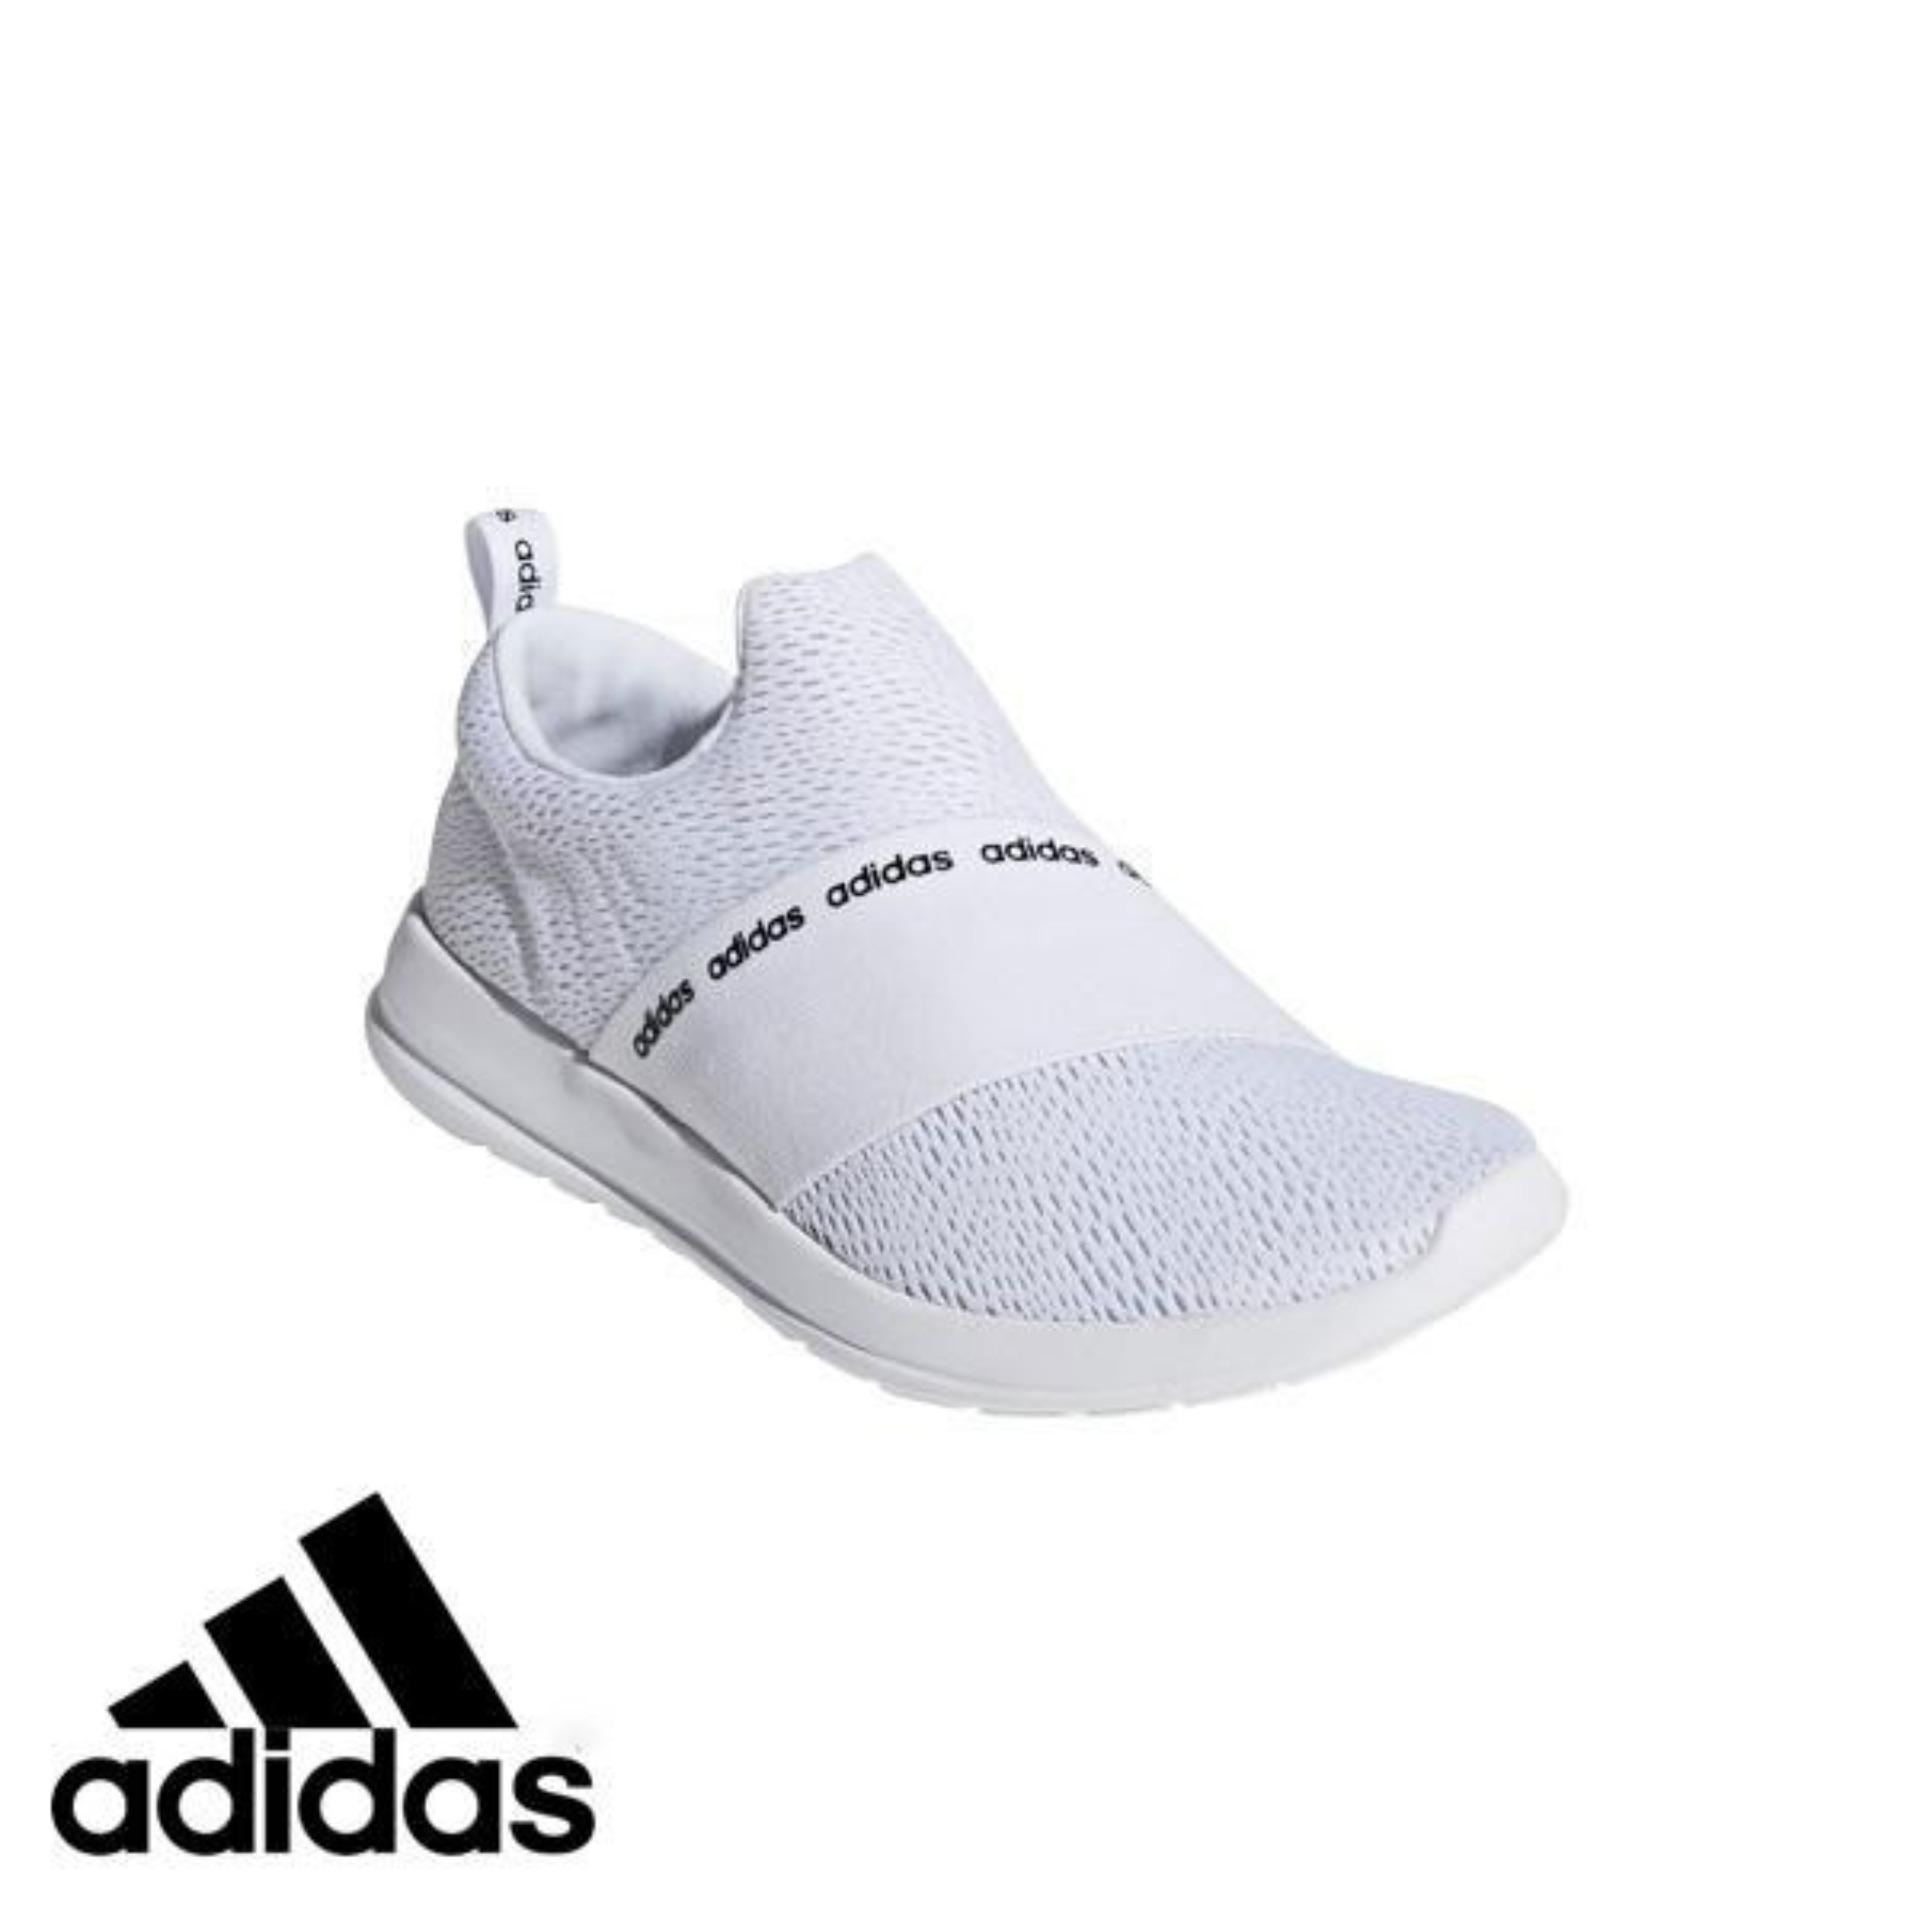 108b7db5a Adidas Sports Shoes Philippines - Adidas Sports Clothing for sale ...